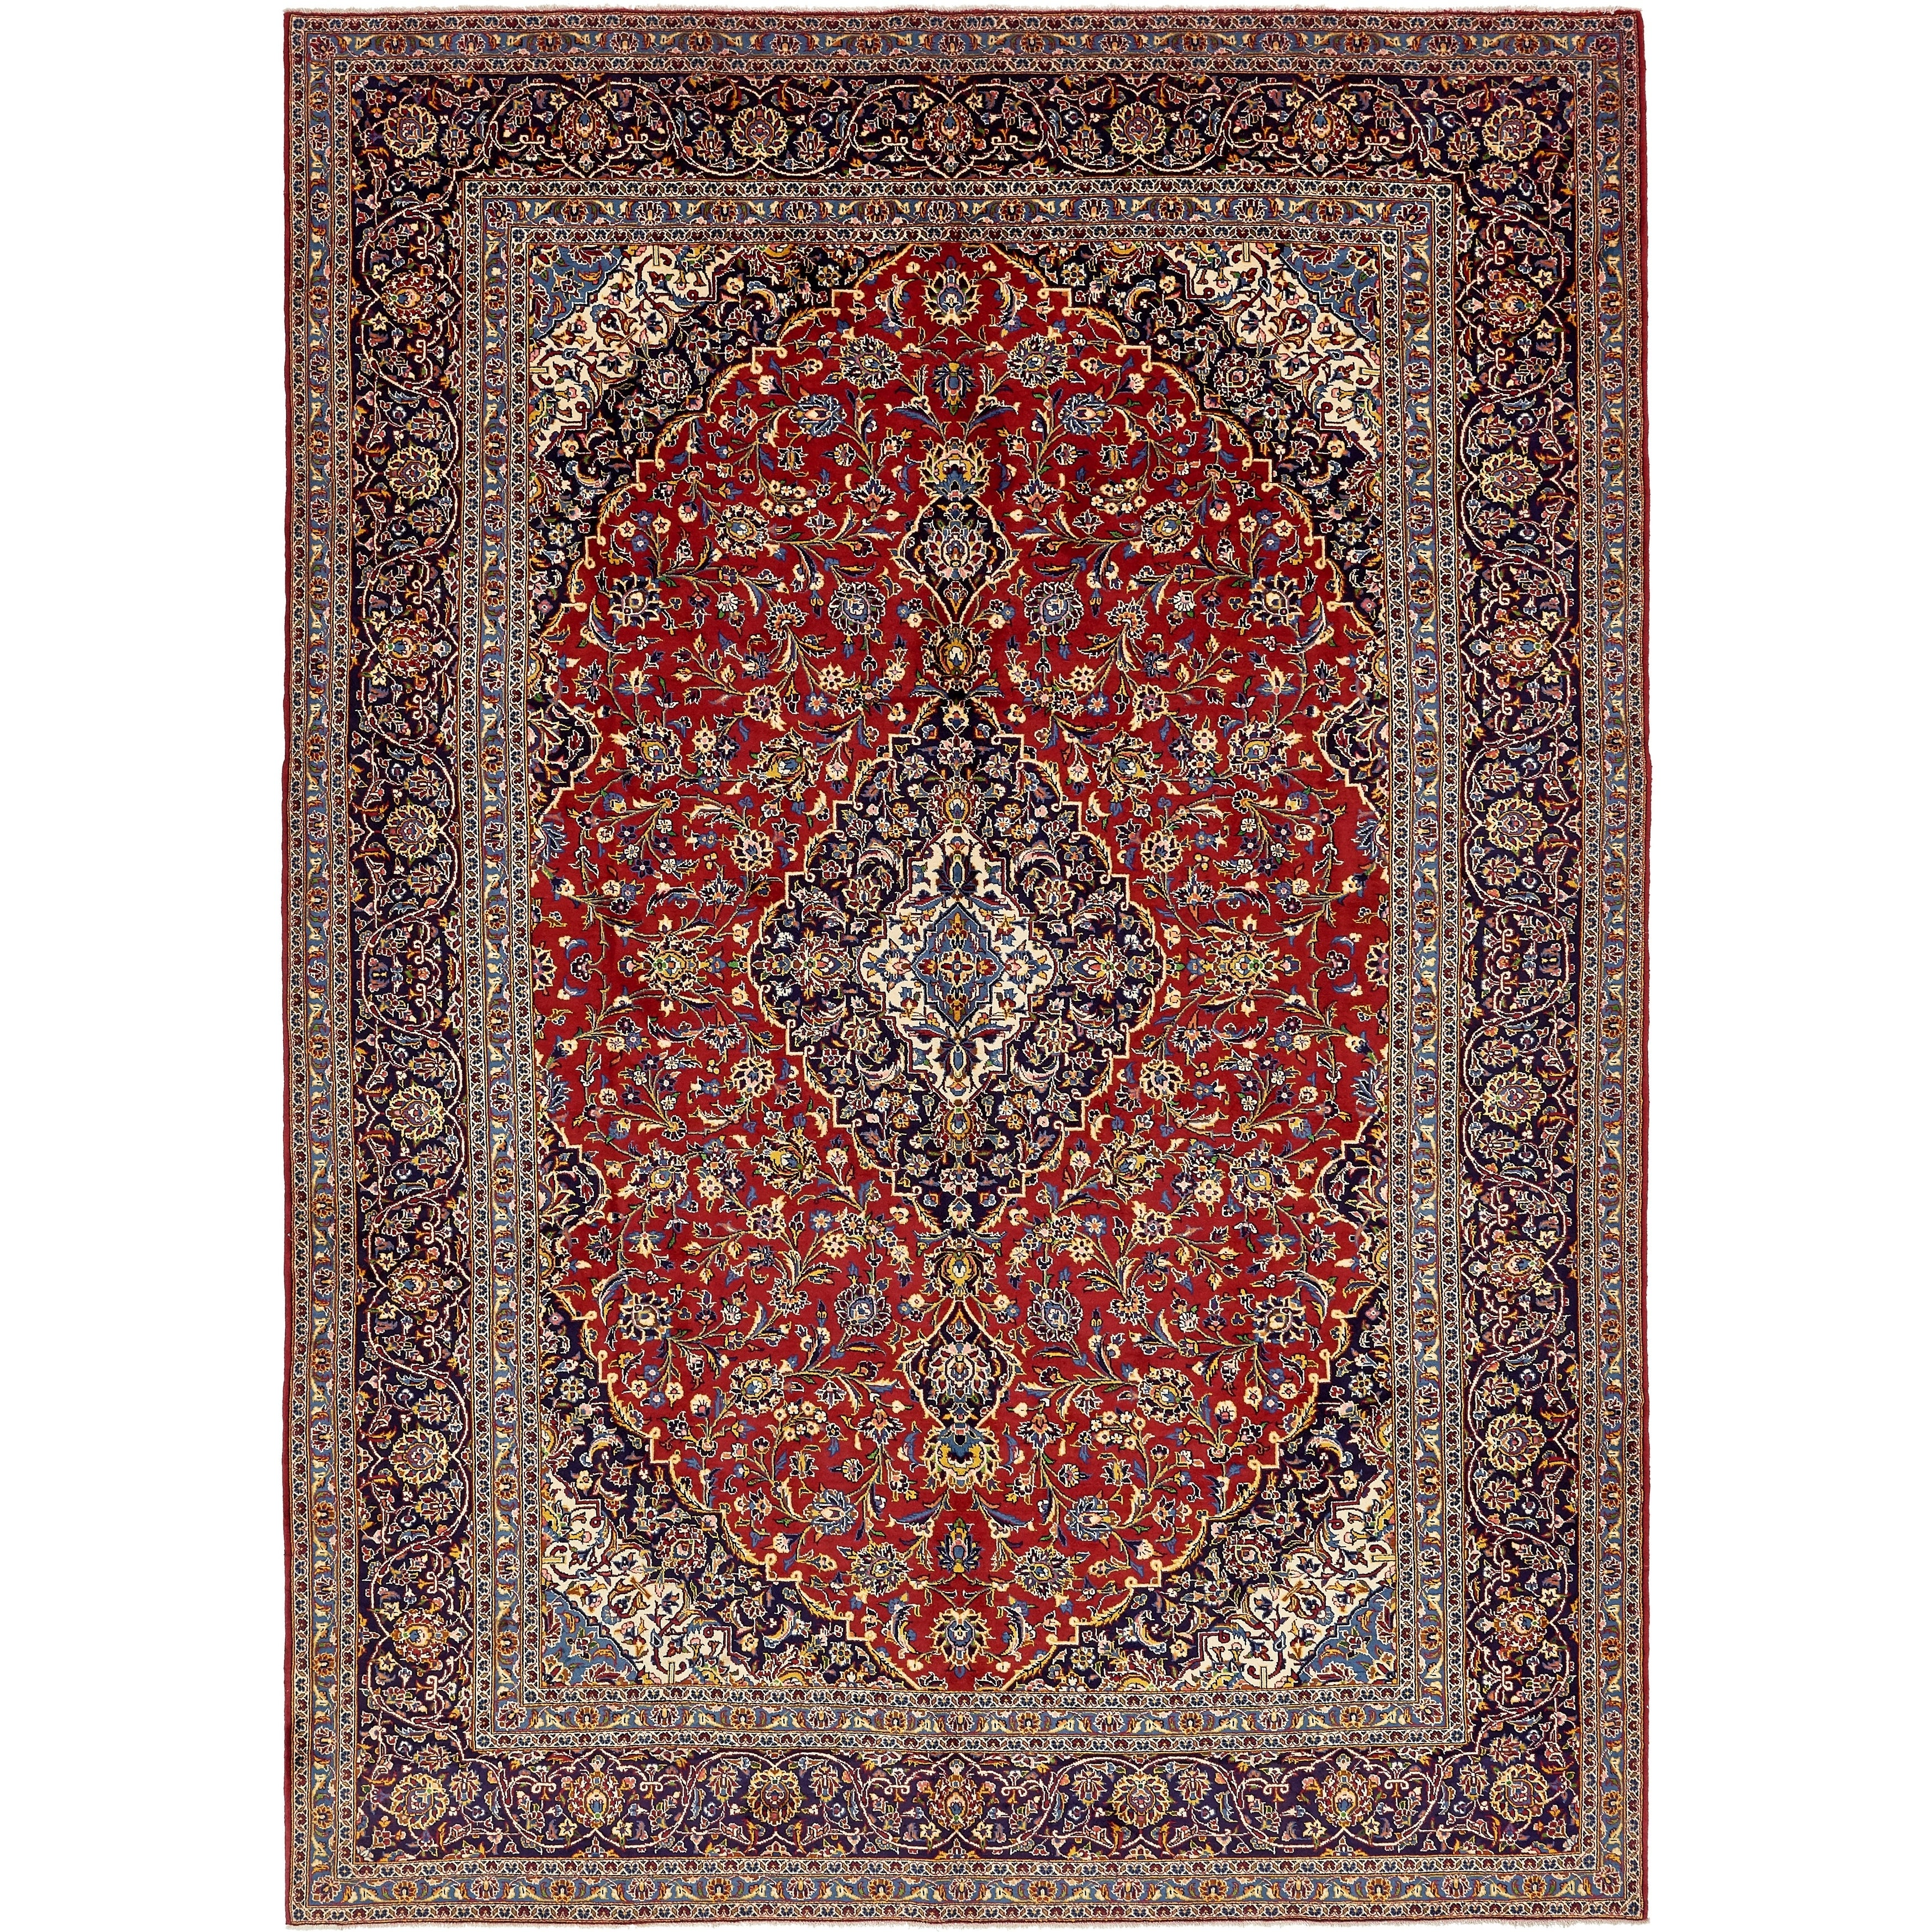 Hand Knotted Kashan Semi Antique Wool Area Rug - 10 2 x 14 4 (Red - 10 2 x 14 4)